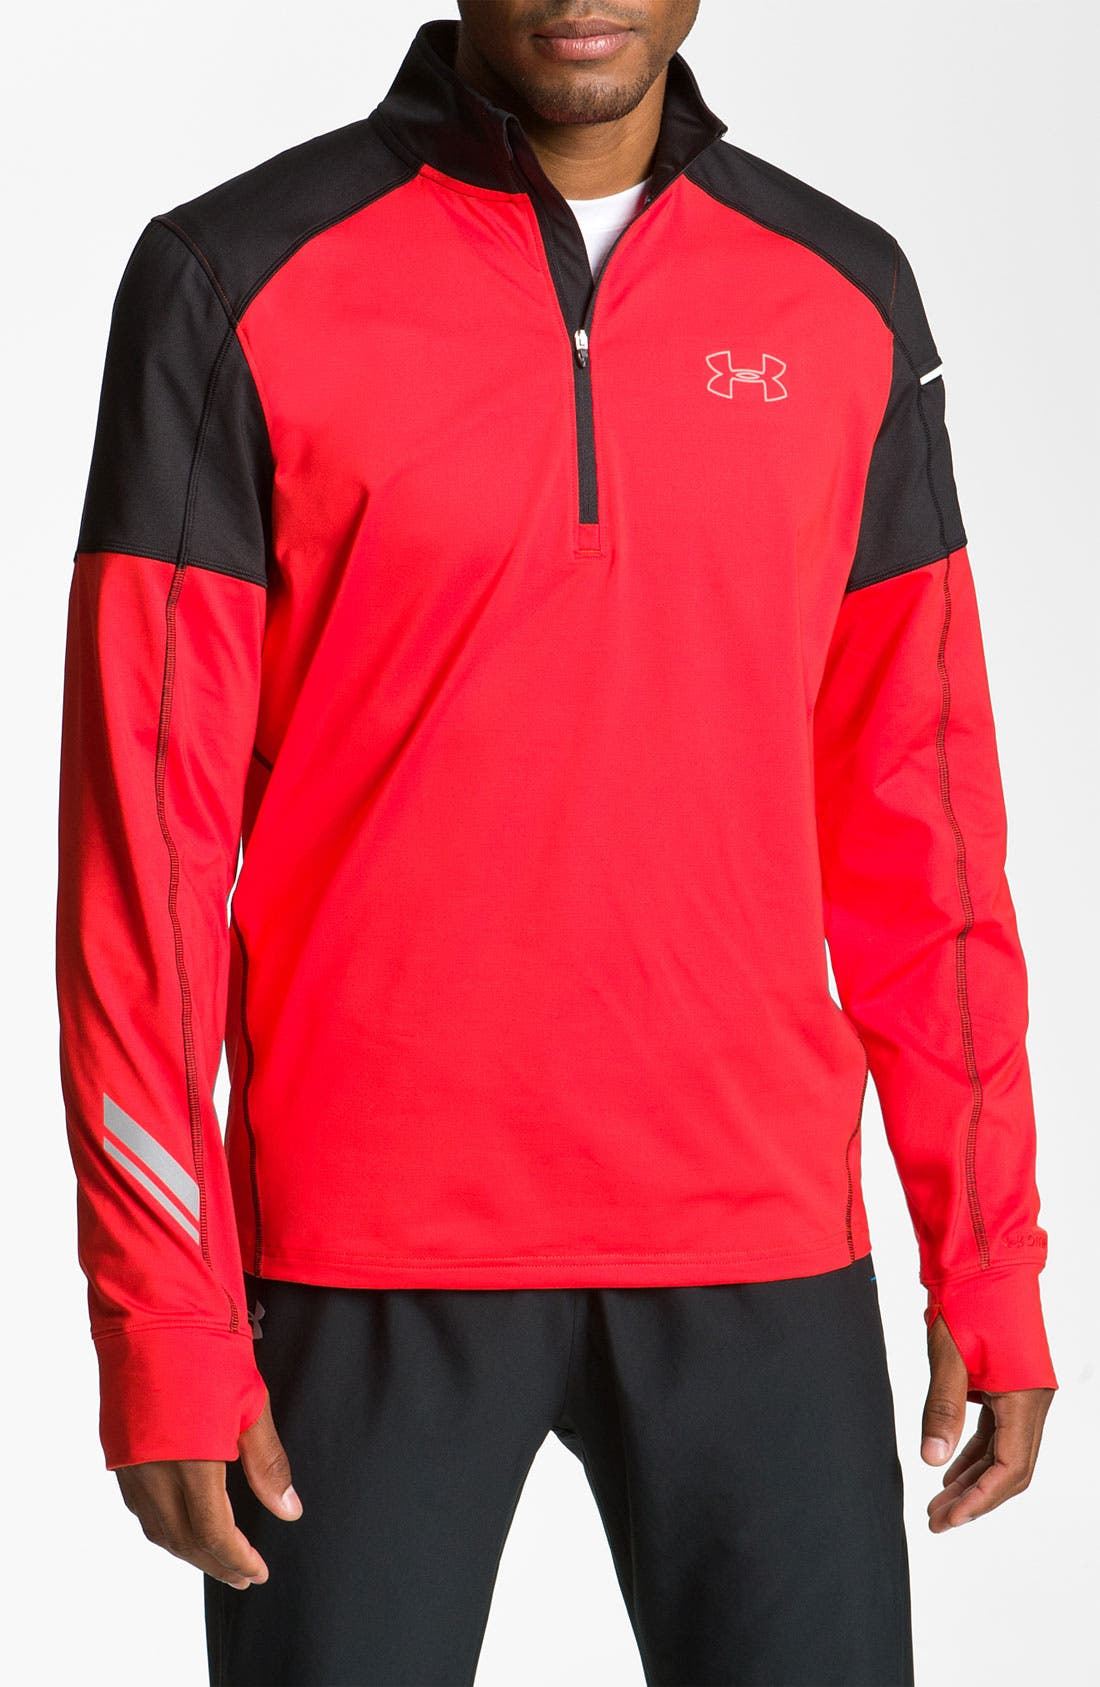 Alternate Image 1 Selected - Under Armour 'Storm Run' Fitted Quarter Zip Pullover